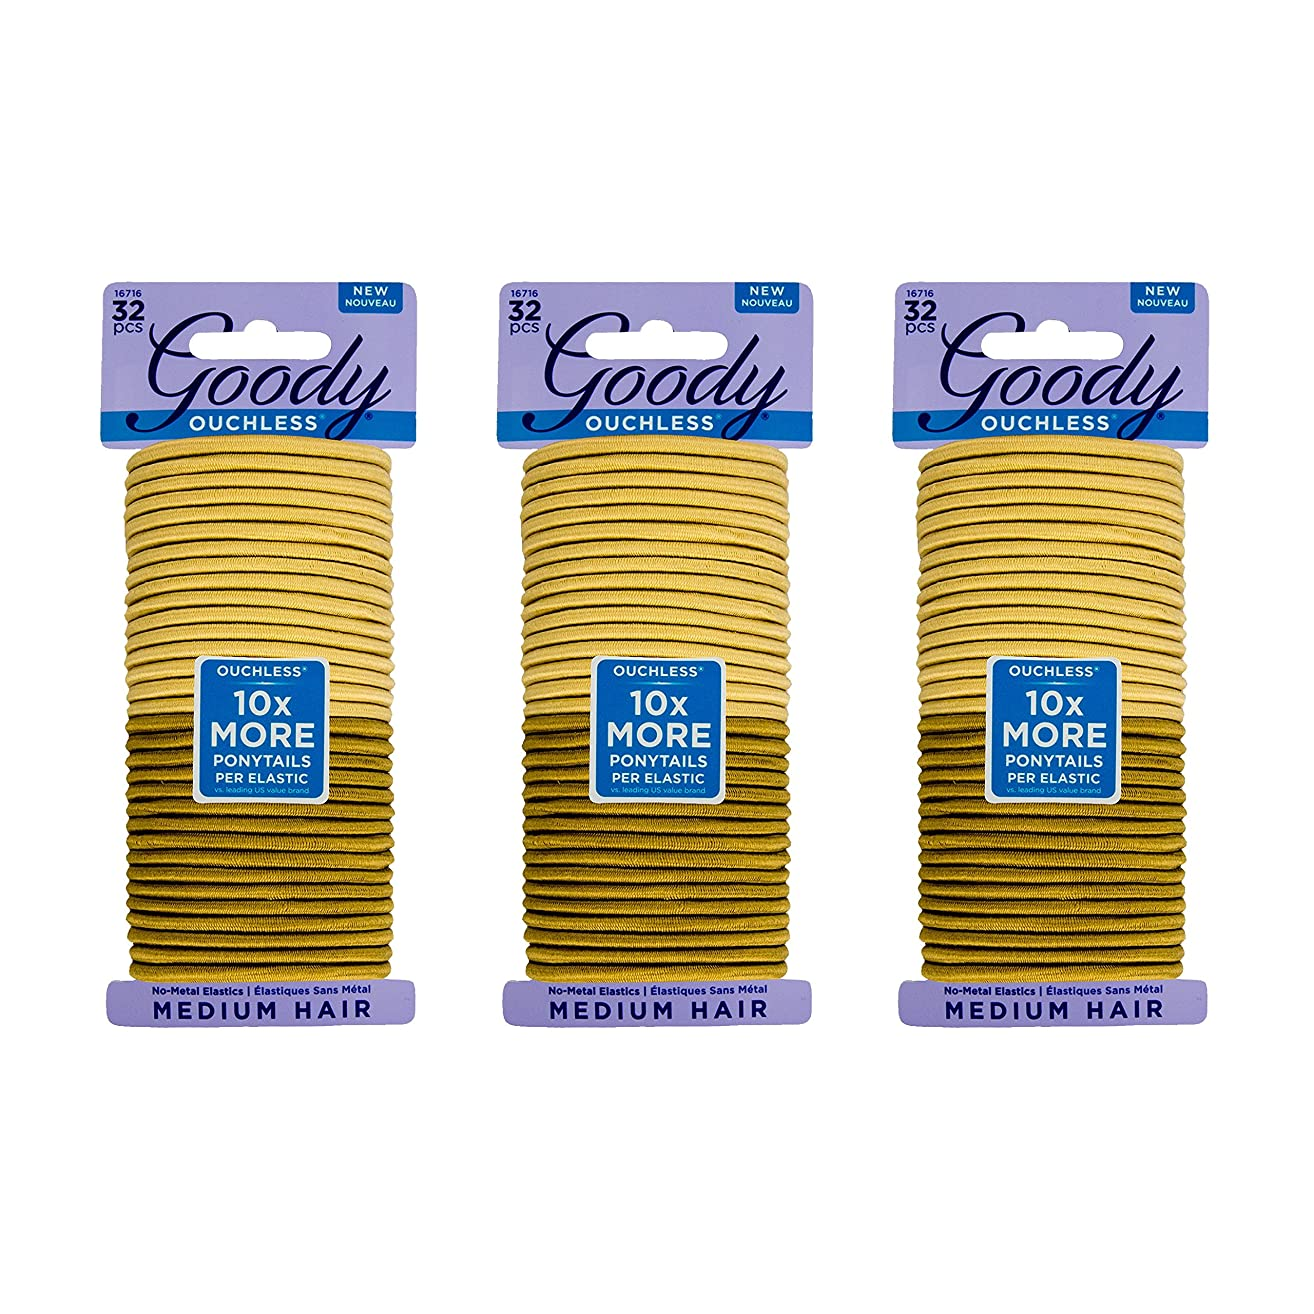 Goody Ouchless Women's Braided Elastics, Blondes, (96 CT Total/ Pack of 3) 4MM for Medium Hair